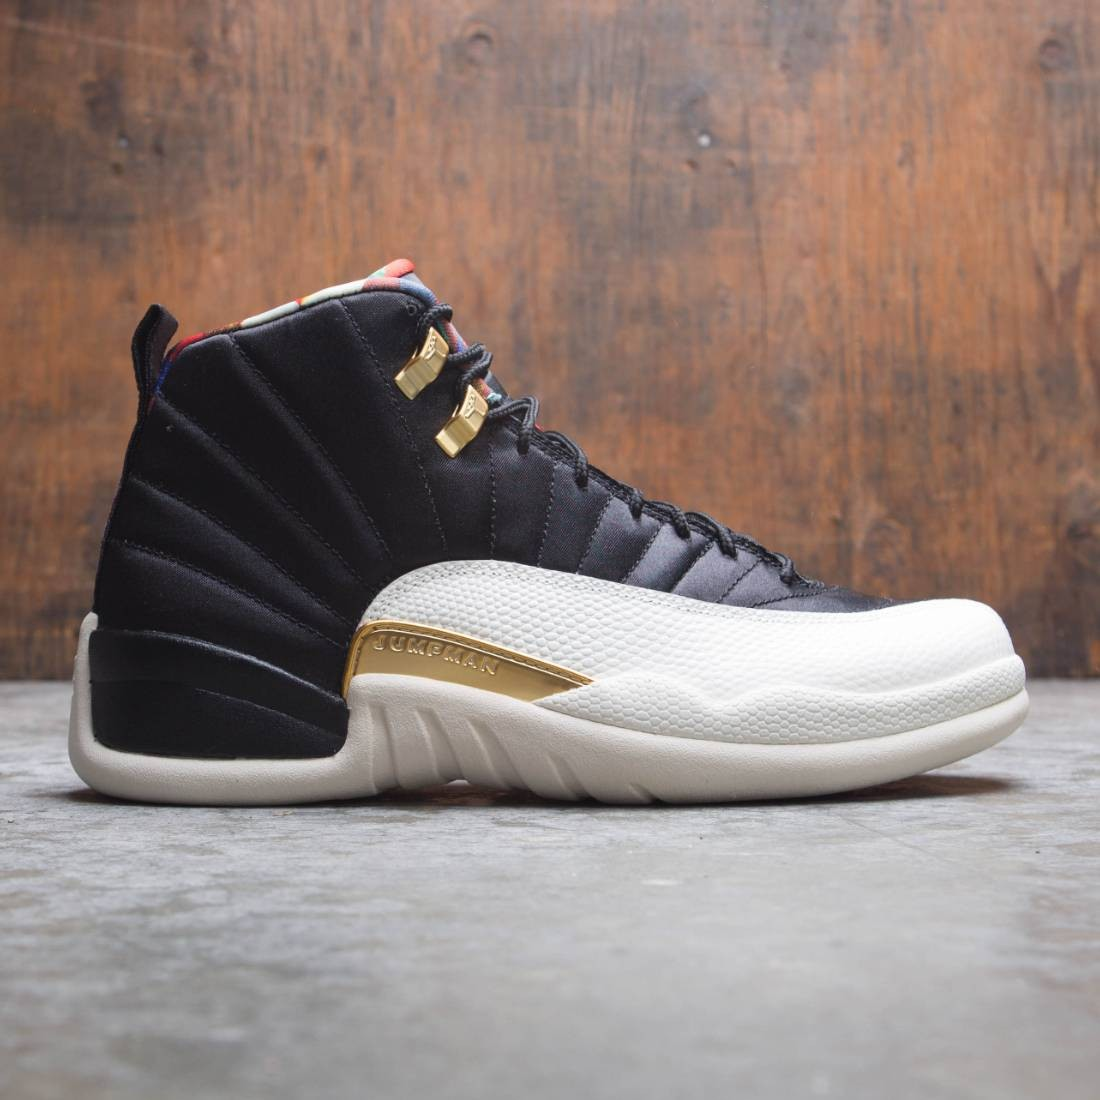 check out 2d0b5 9e3a0 AIR JORDAN 12 RETRO CNY Men (black / true red-sail-metallic gold)